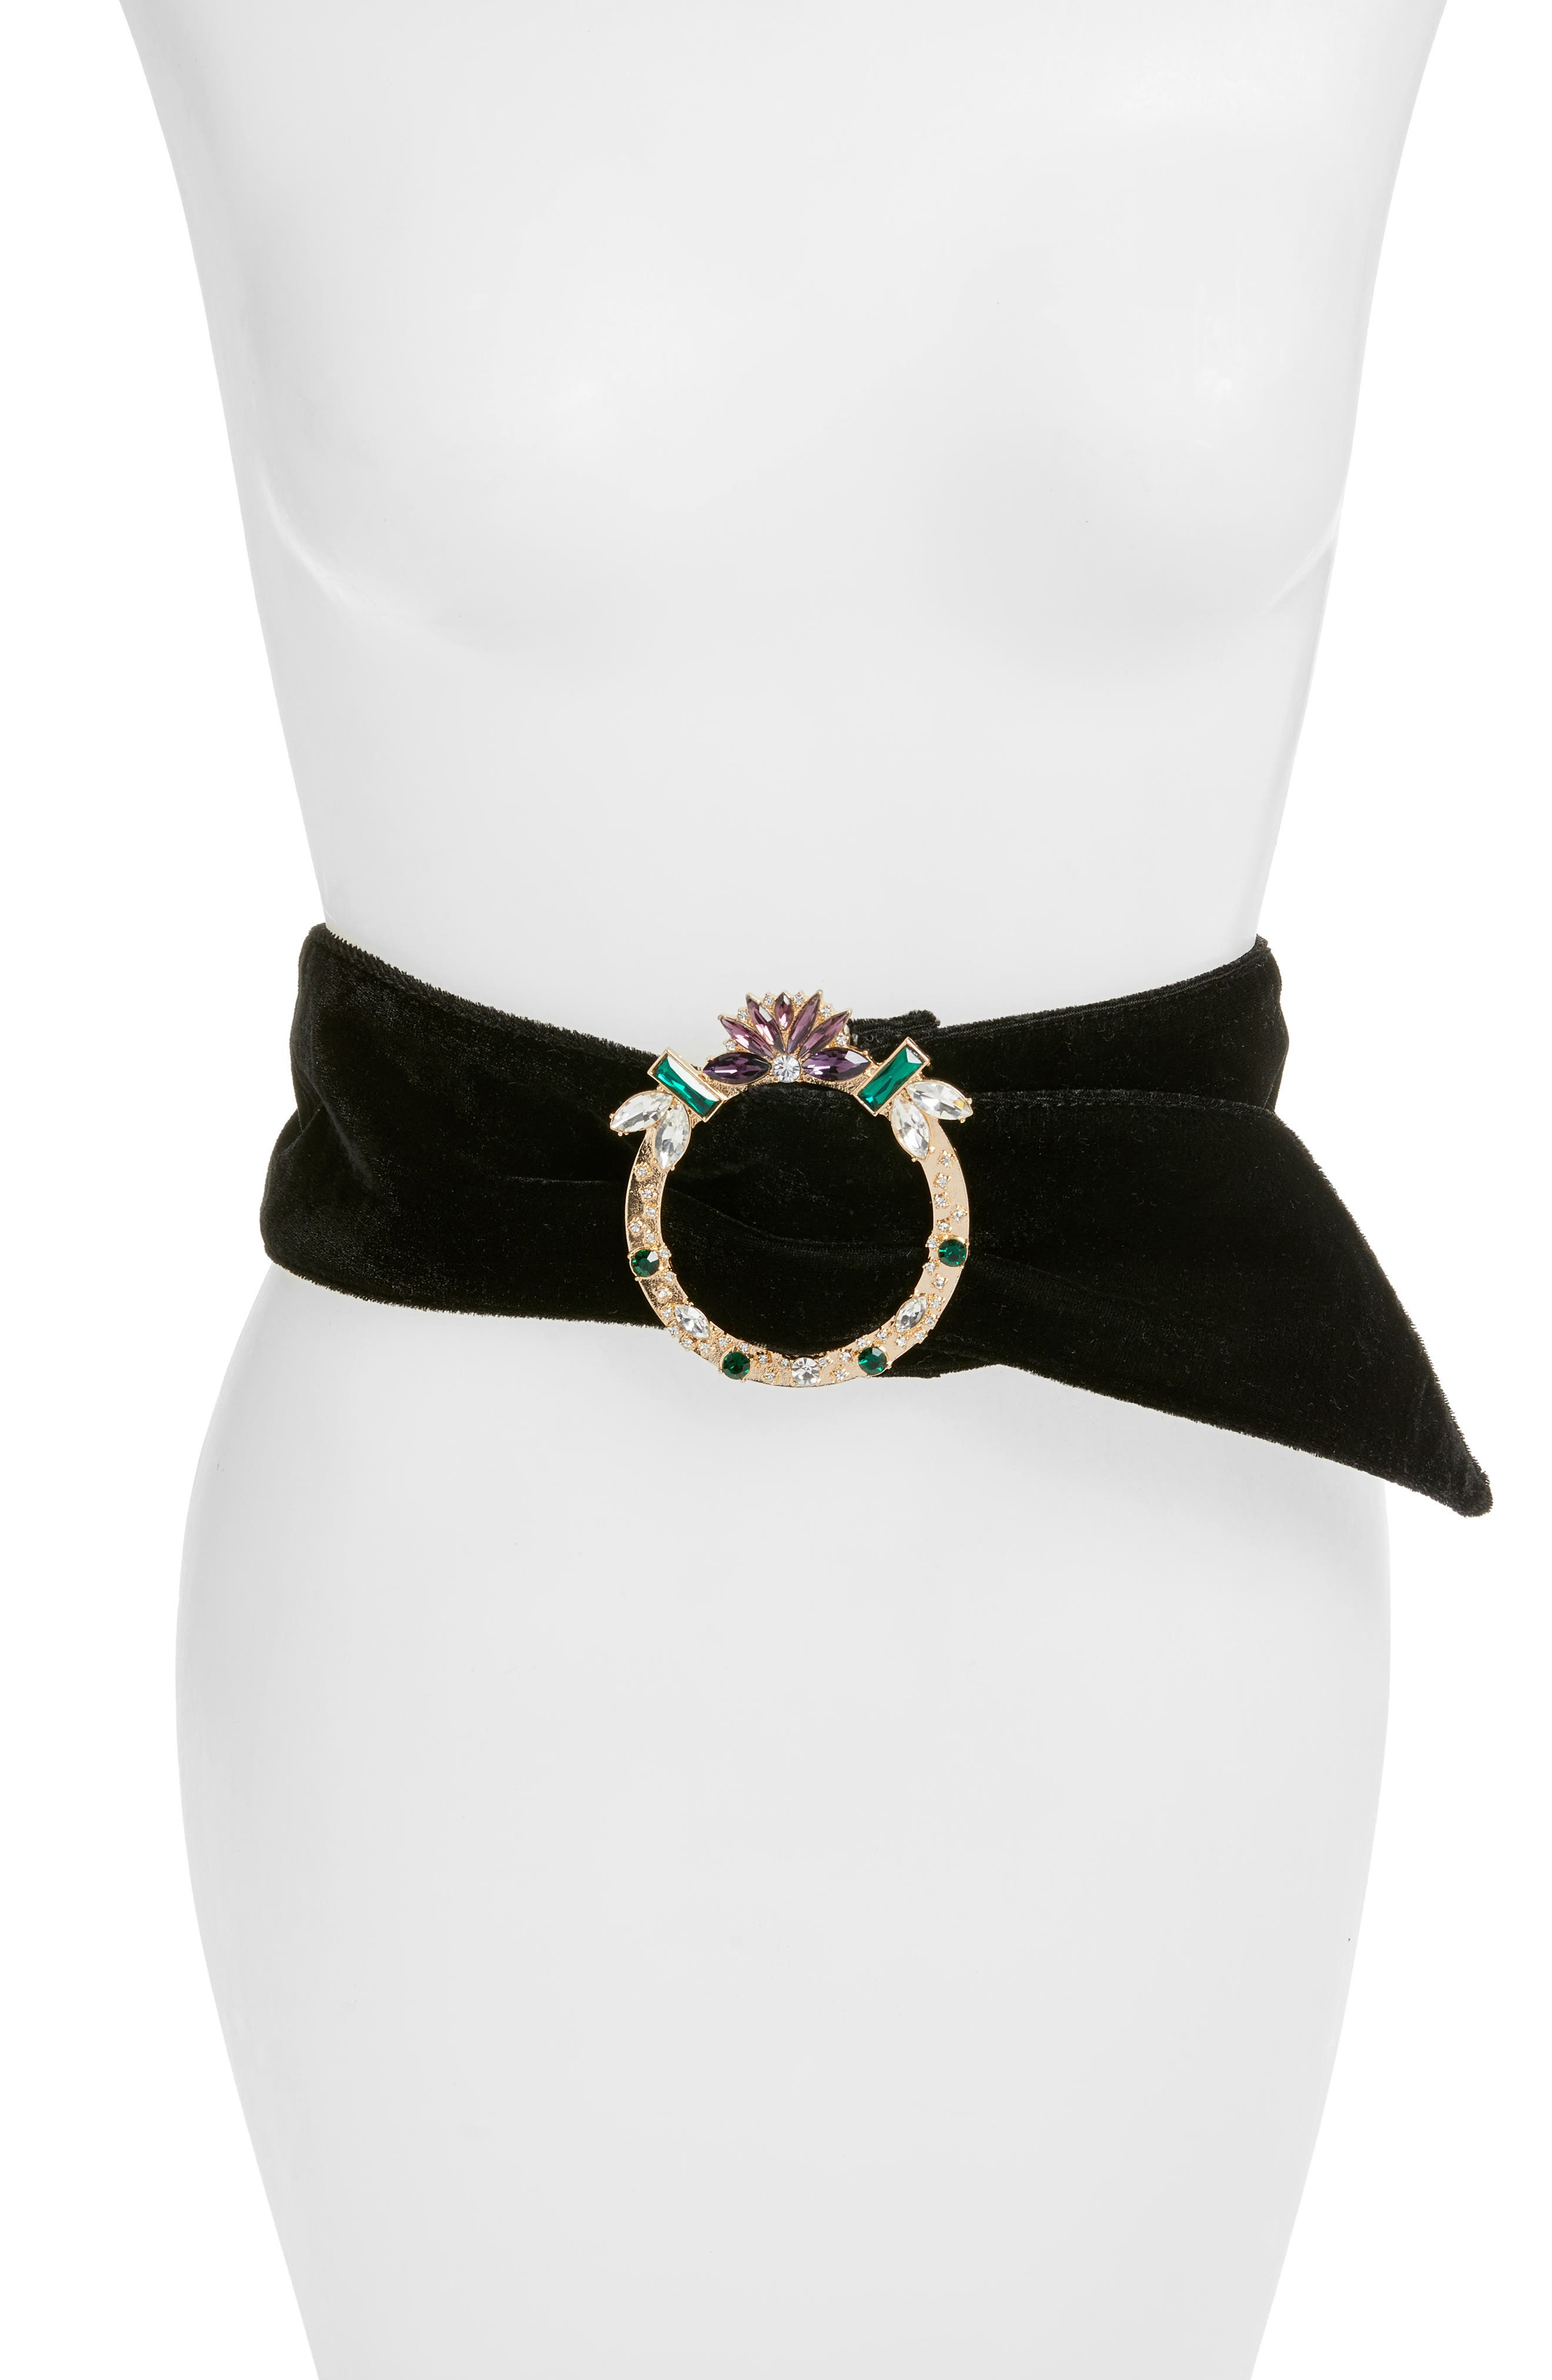 Alternate Image 1 Selected - Leith Jewel Buckle Belt